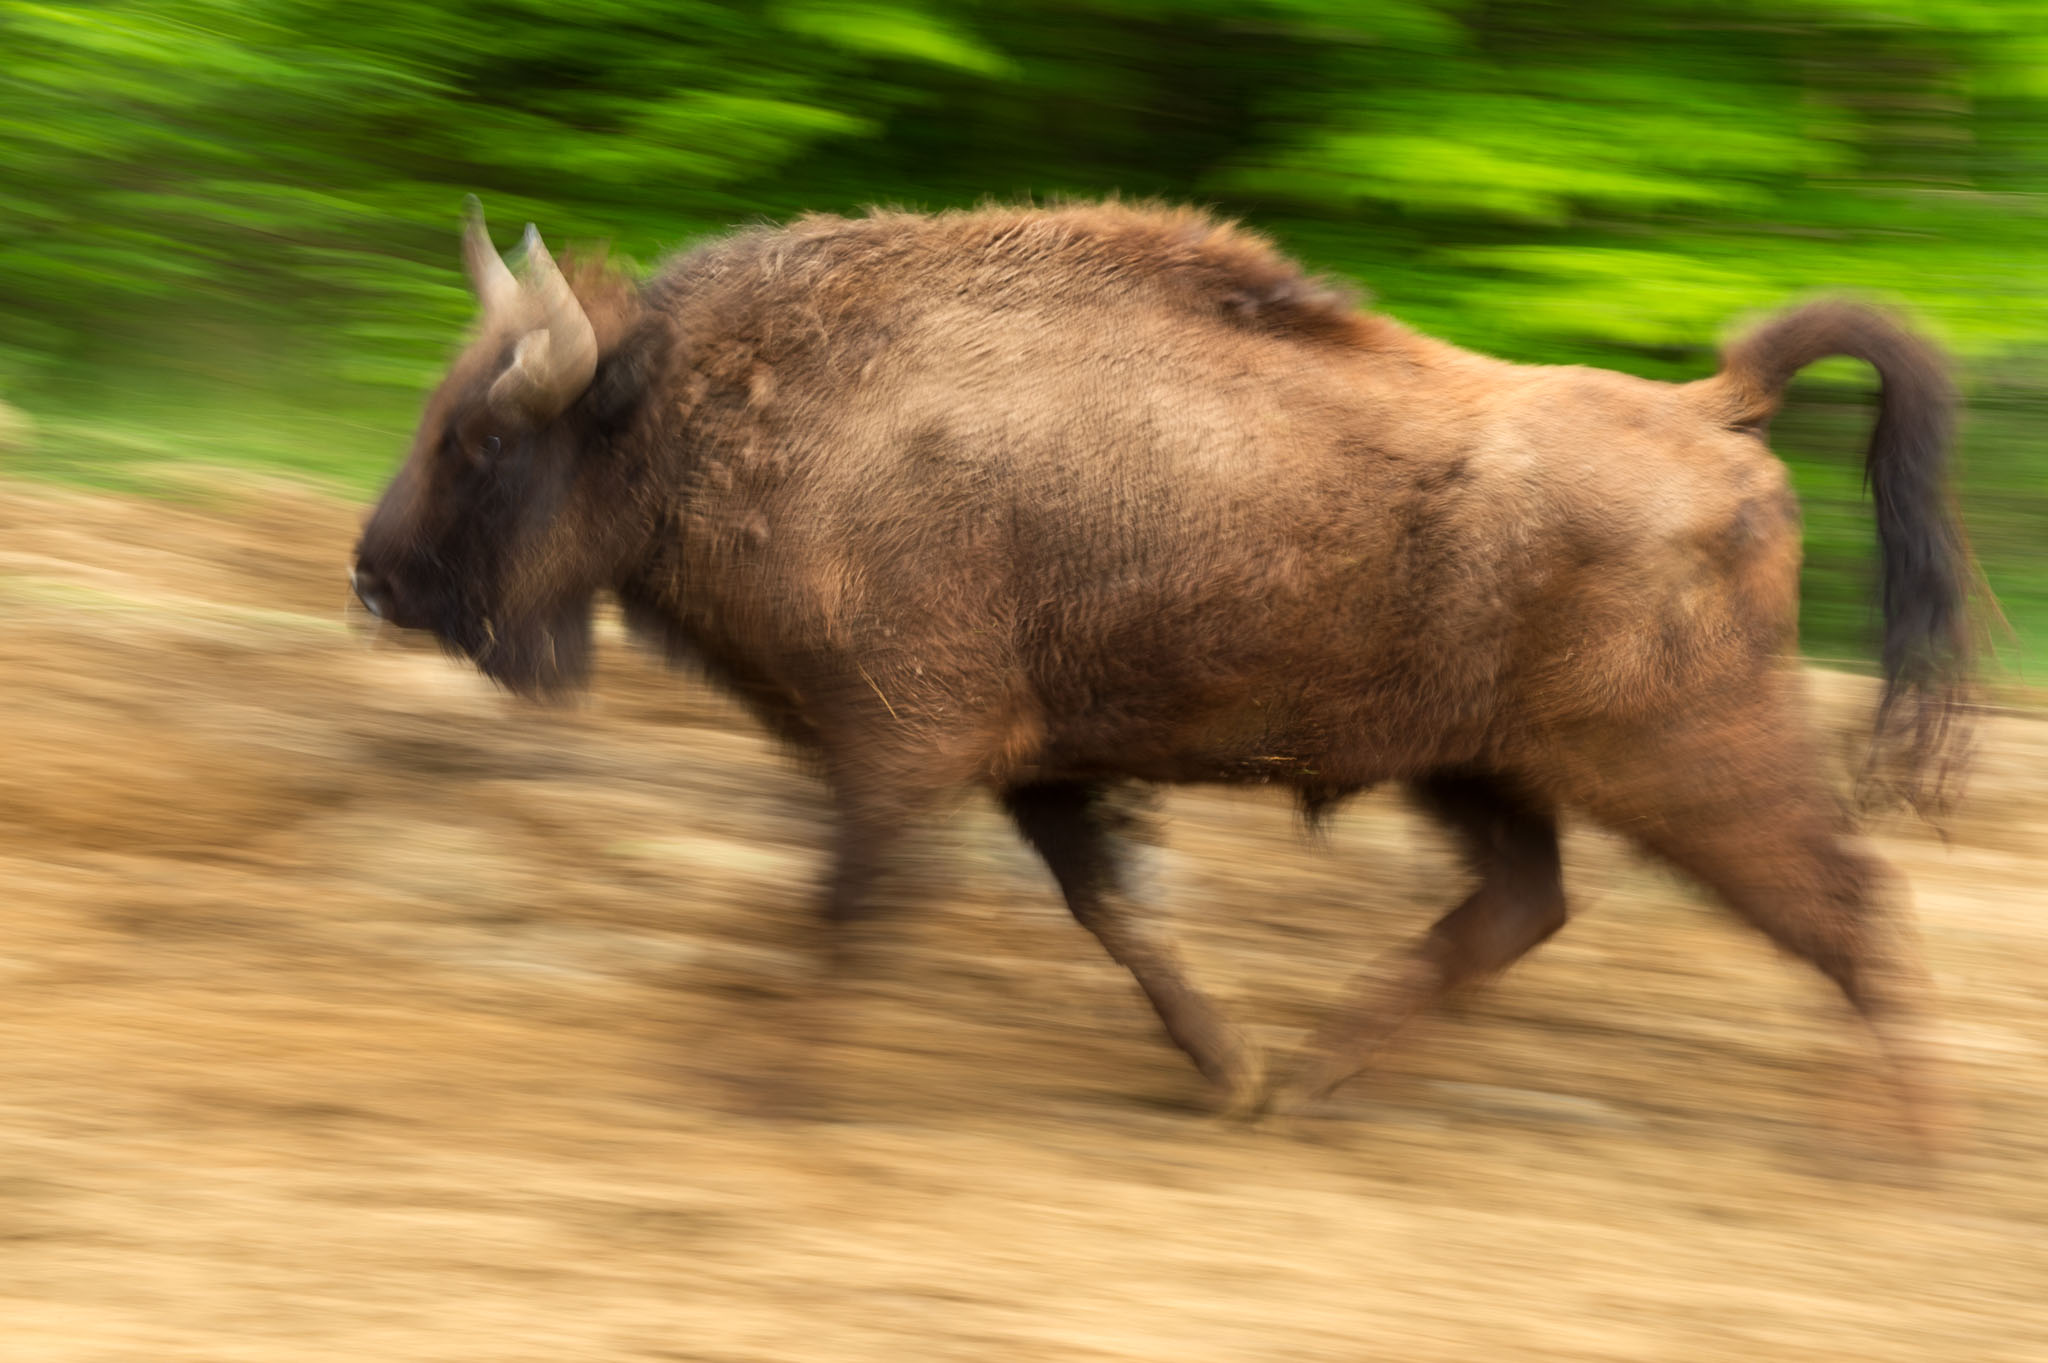 Click on the image above to view images from the bison photo exhibition.